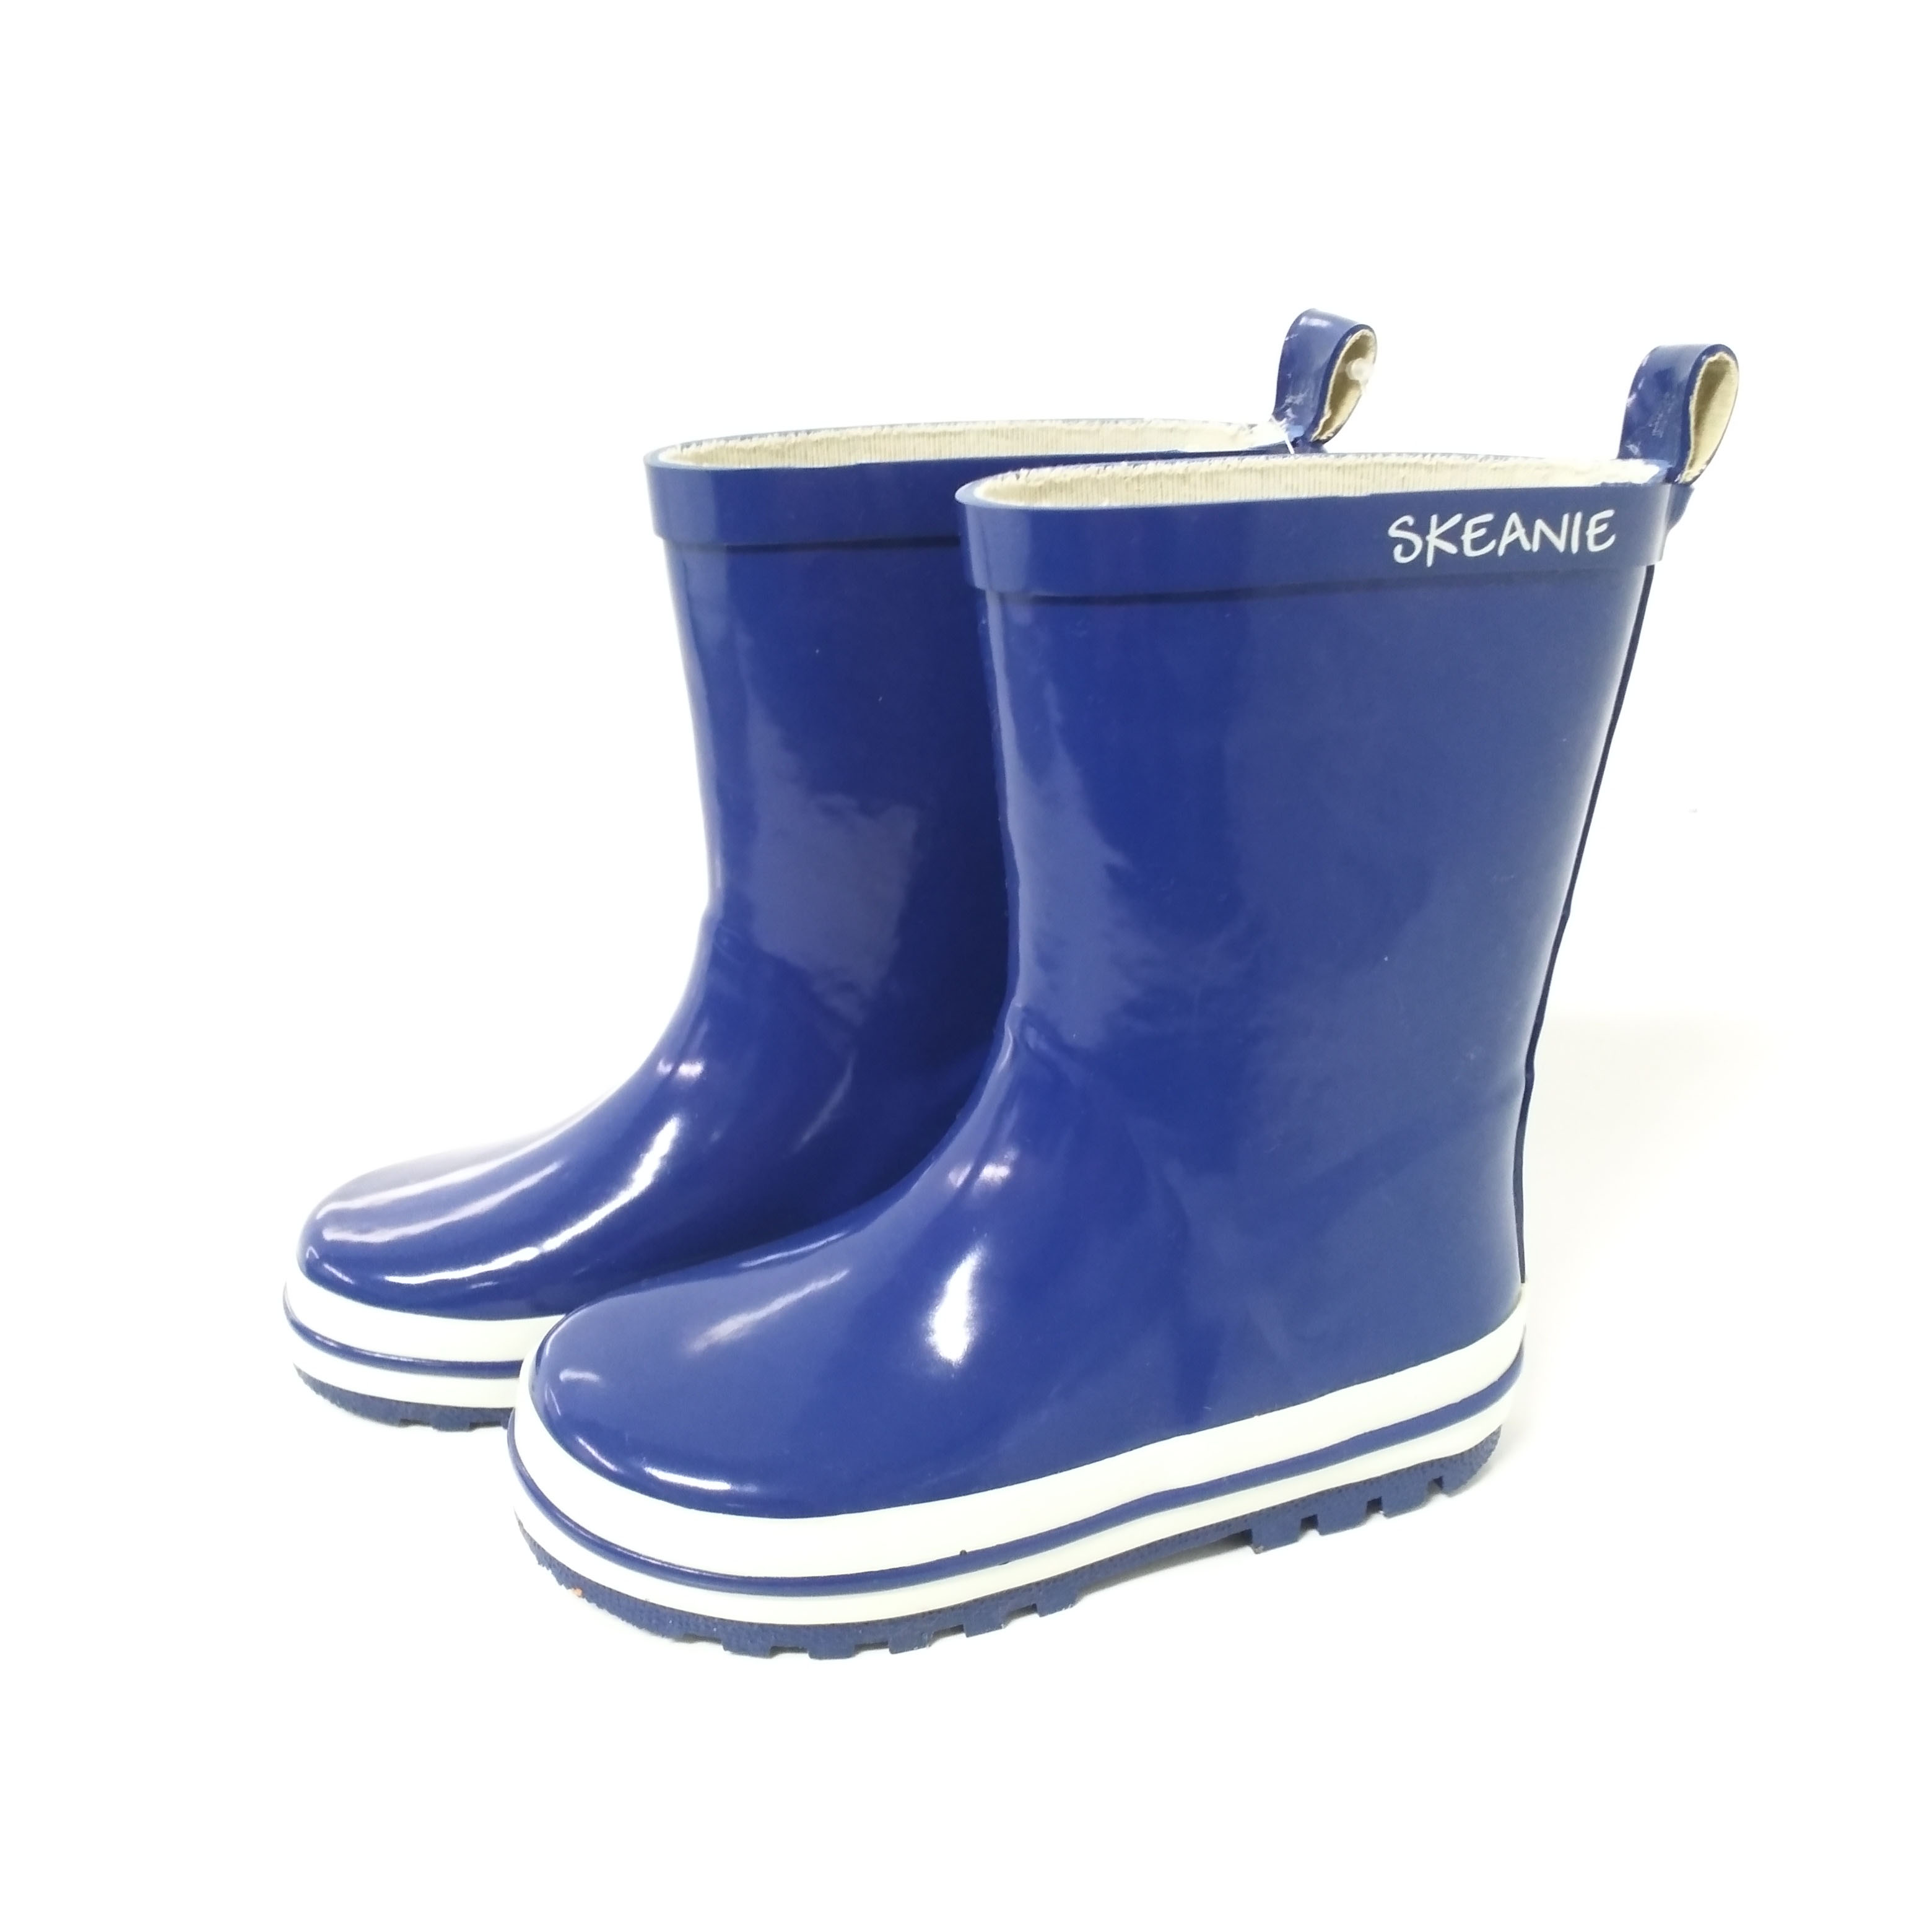 BLue plain Cheap navy rubber BOYS children rainboots